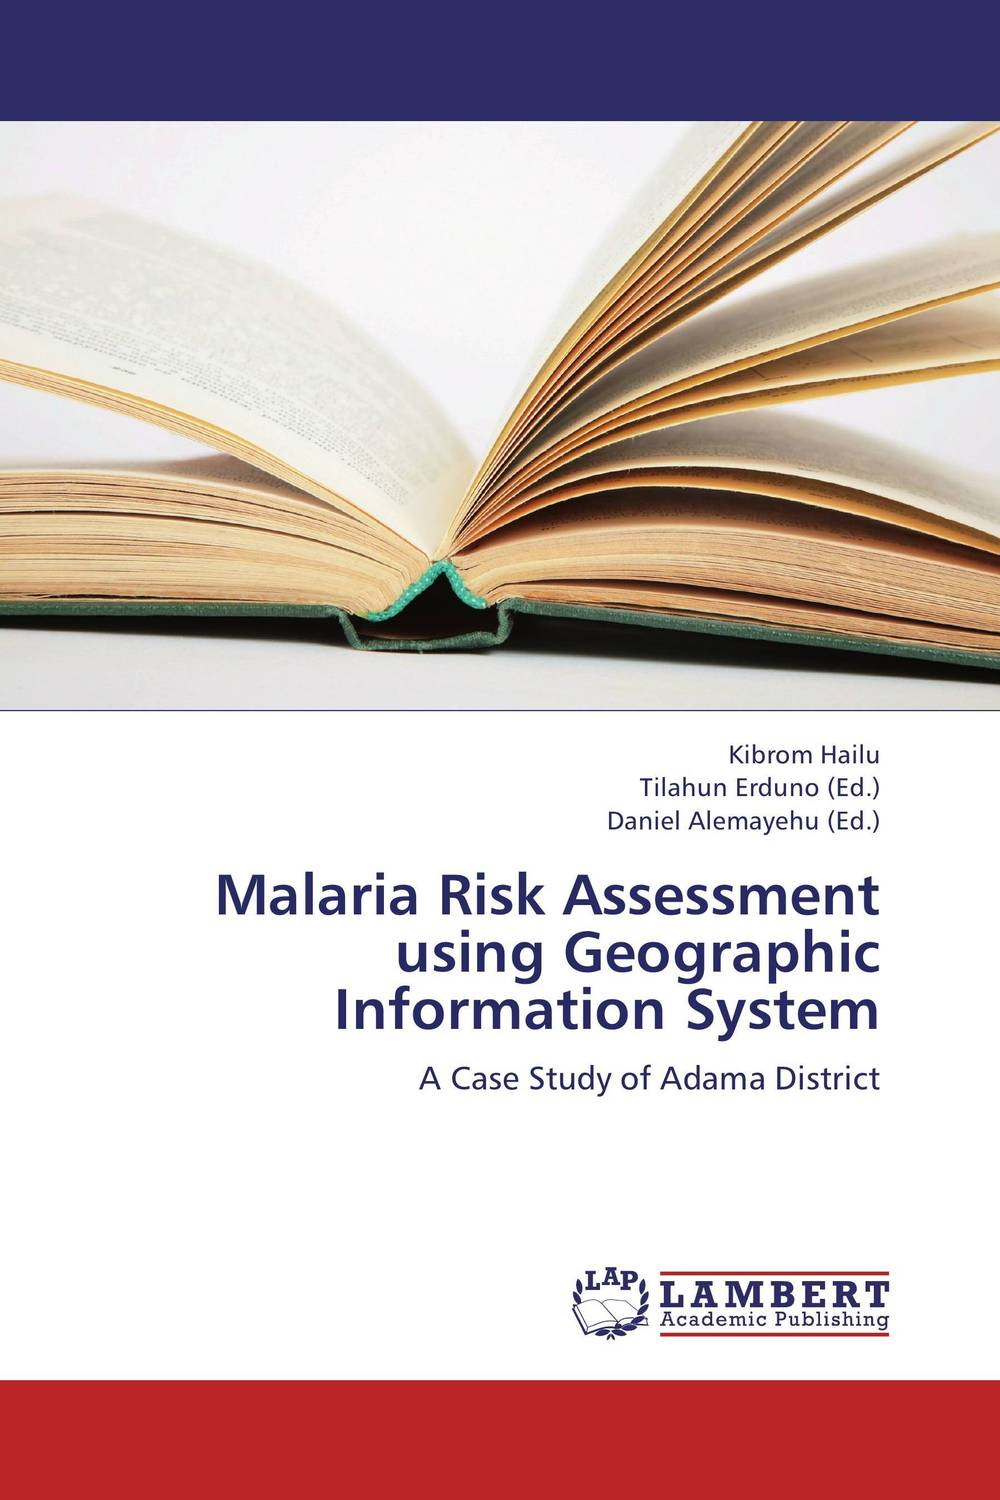 Malaria Risk Assessment using Geographic Information System candino c4609 2